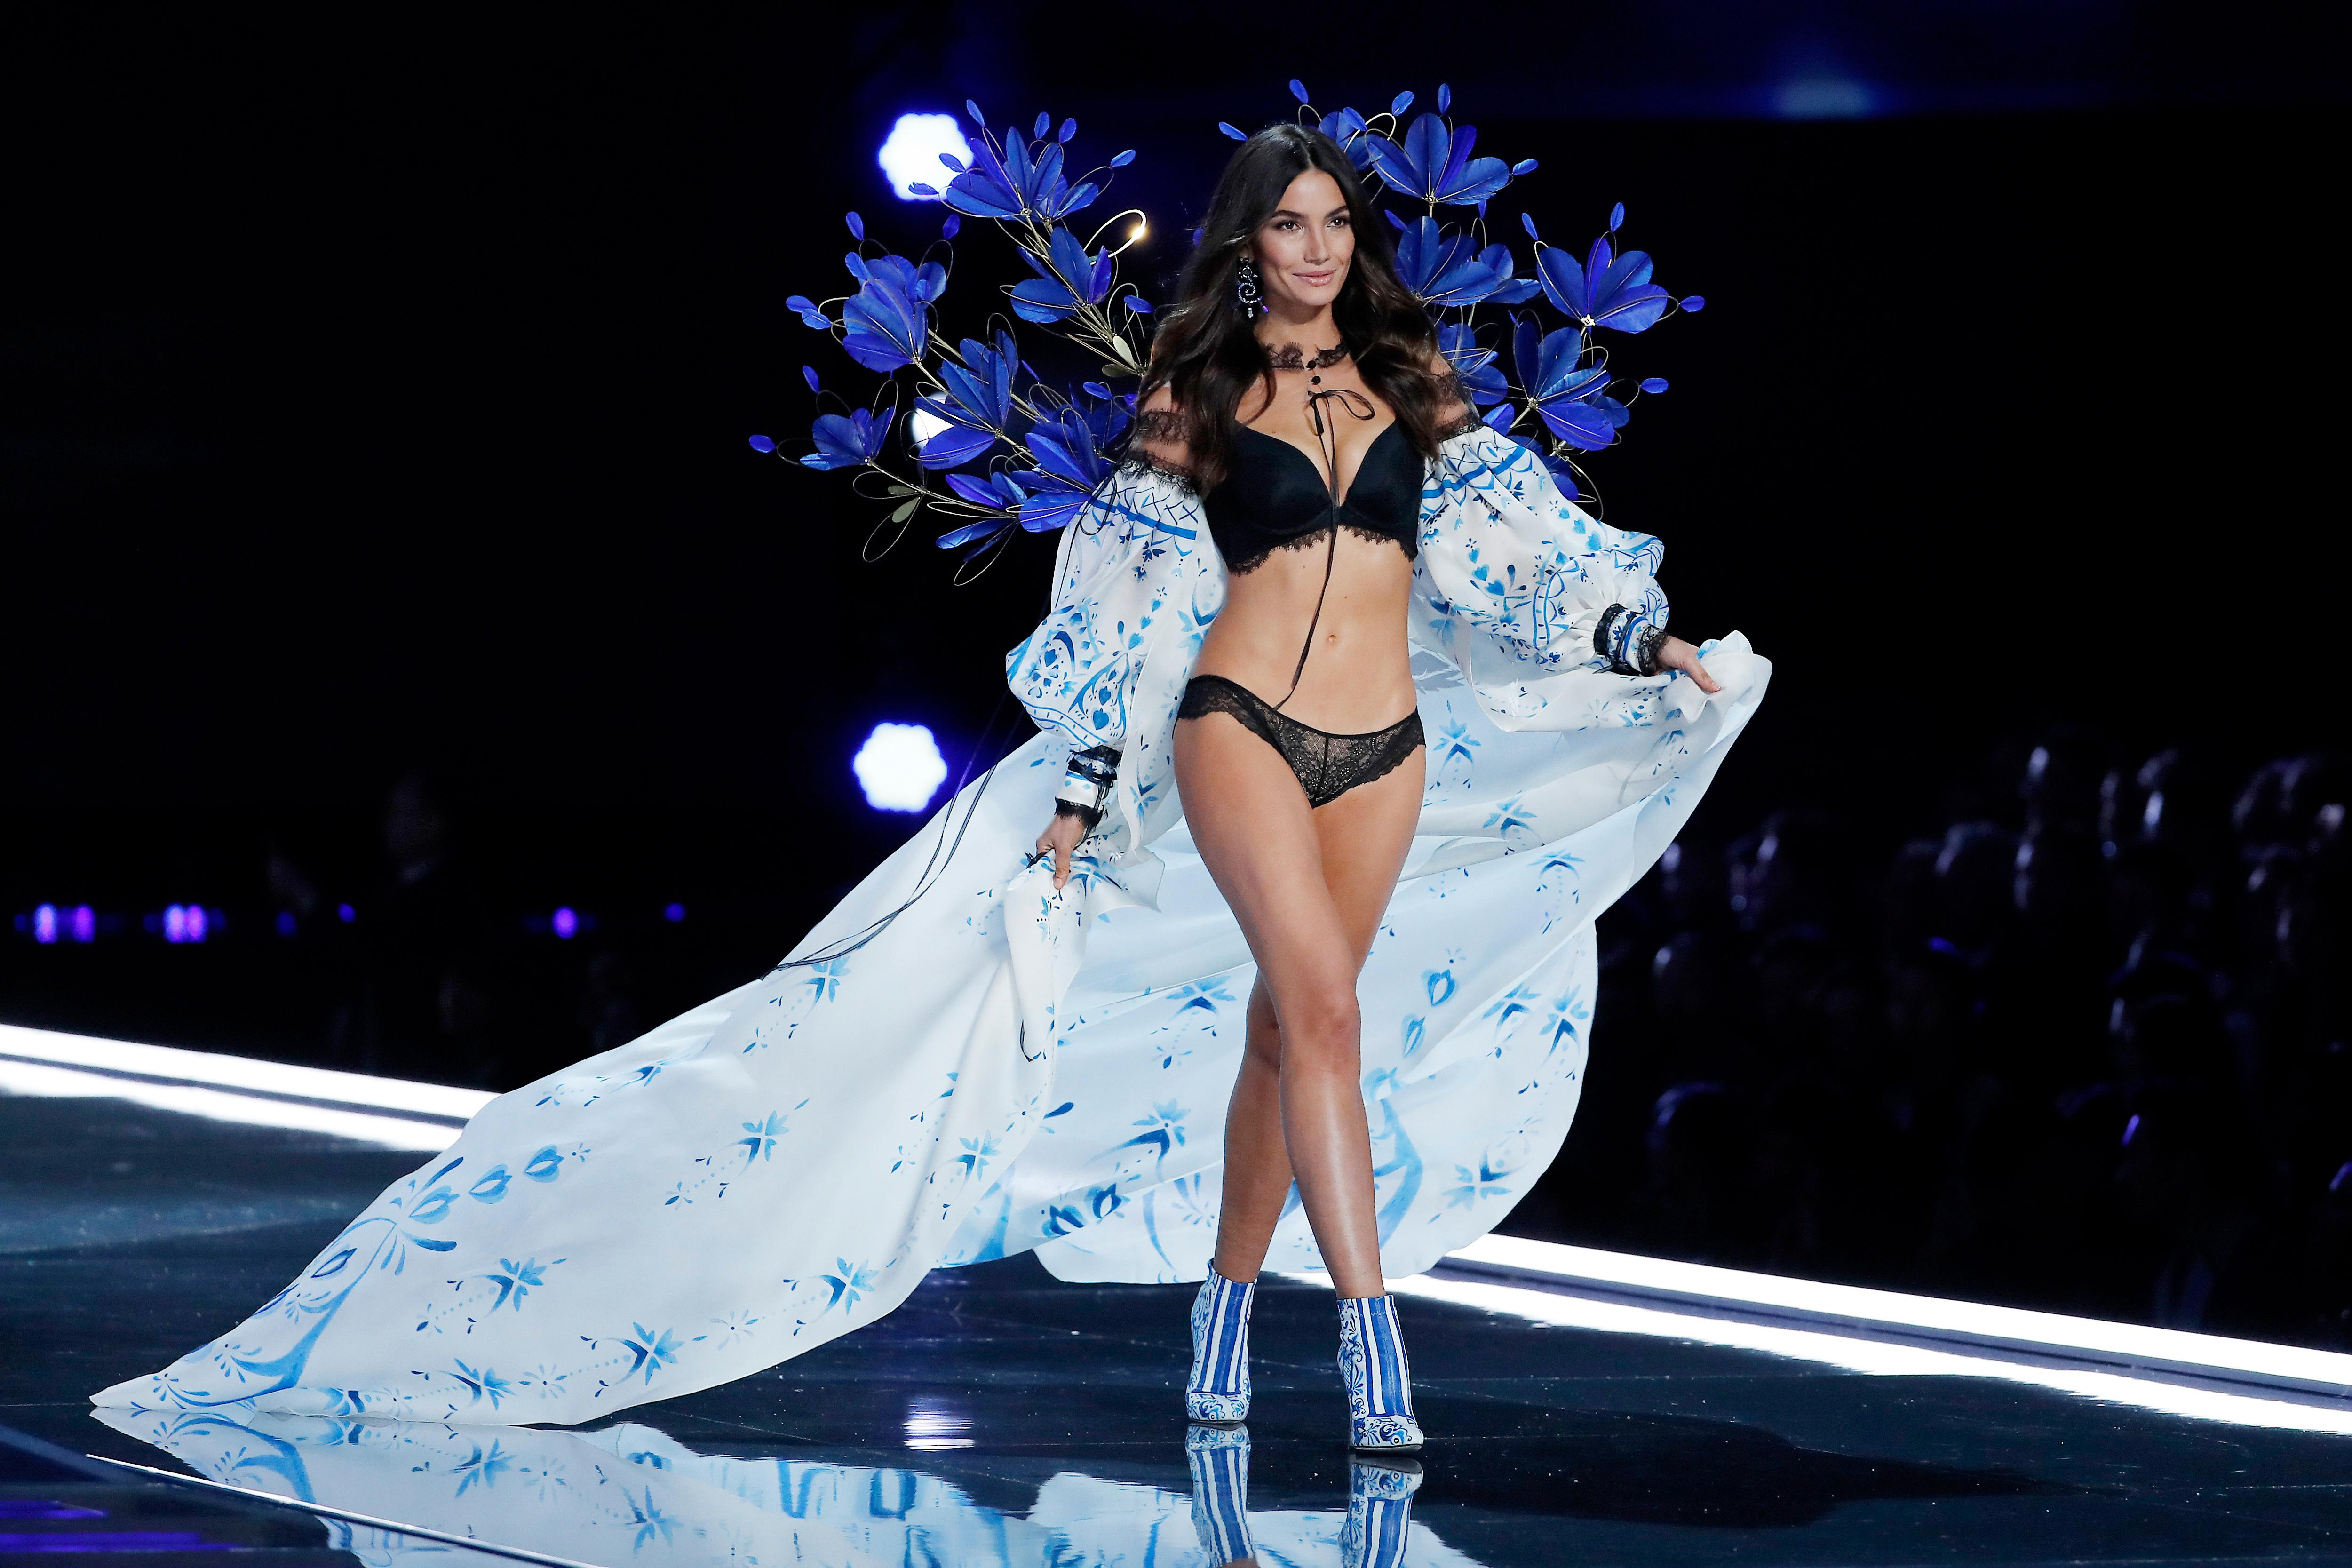 Model Lily Aldridge wears a creation during the Victoria's Secret fashion show at the Mercedes-Benz Arena in Shanghai, China, Monday, Nov. 20, 2017. (AP Photo/Andy Wong)